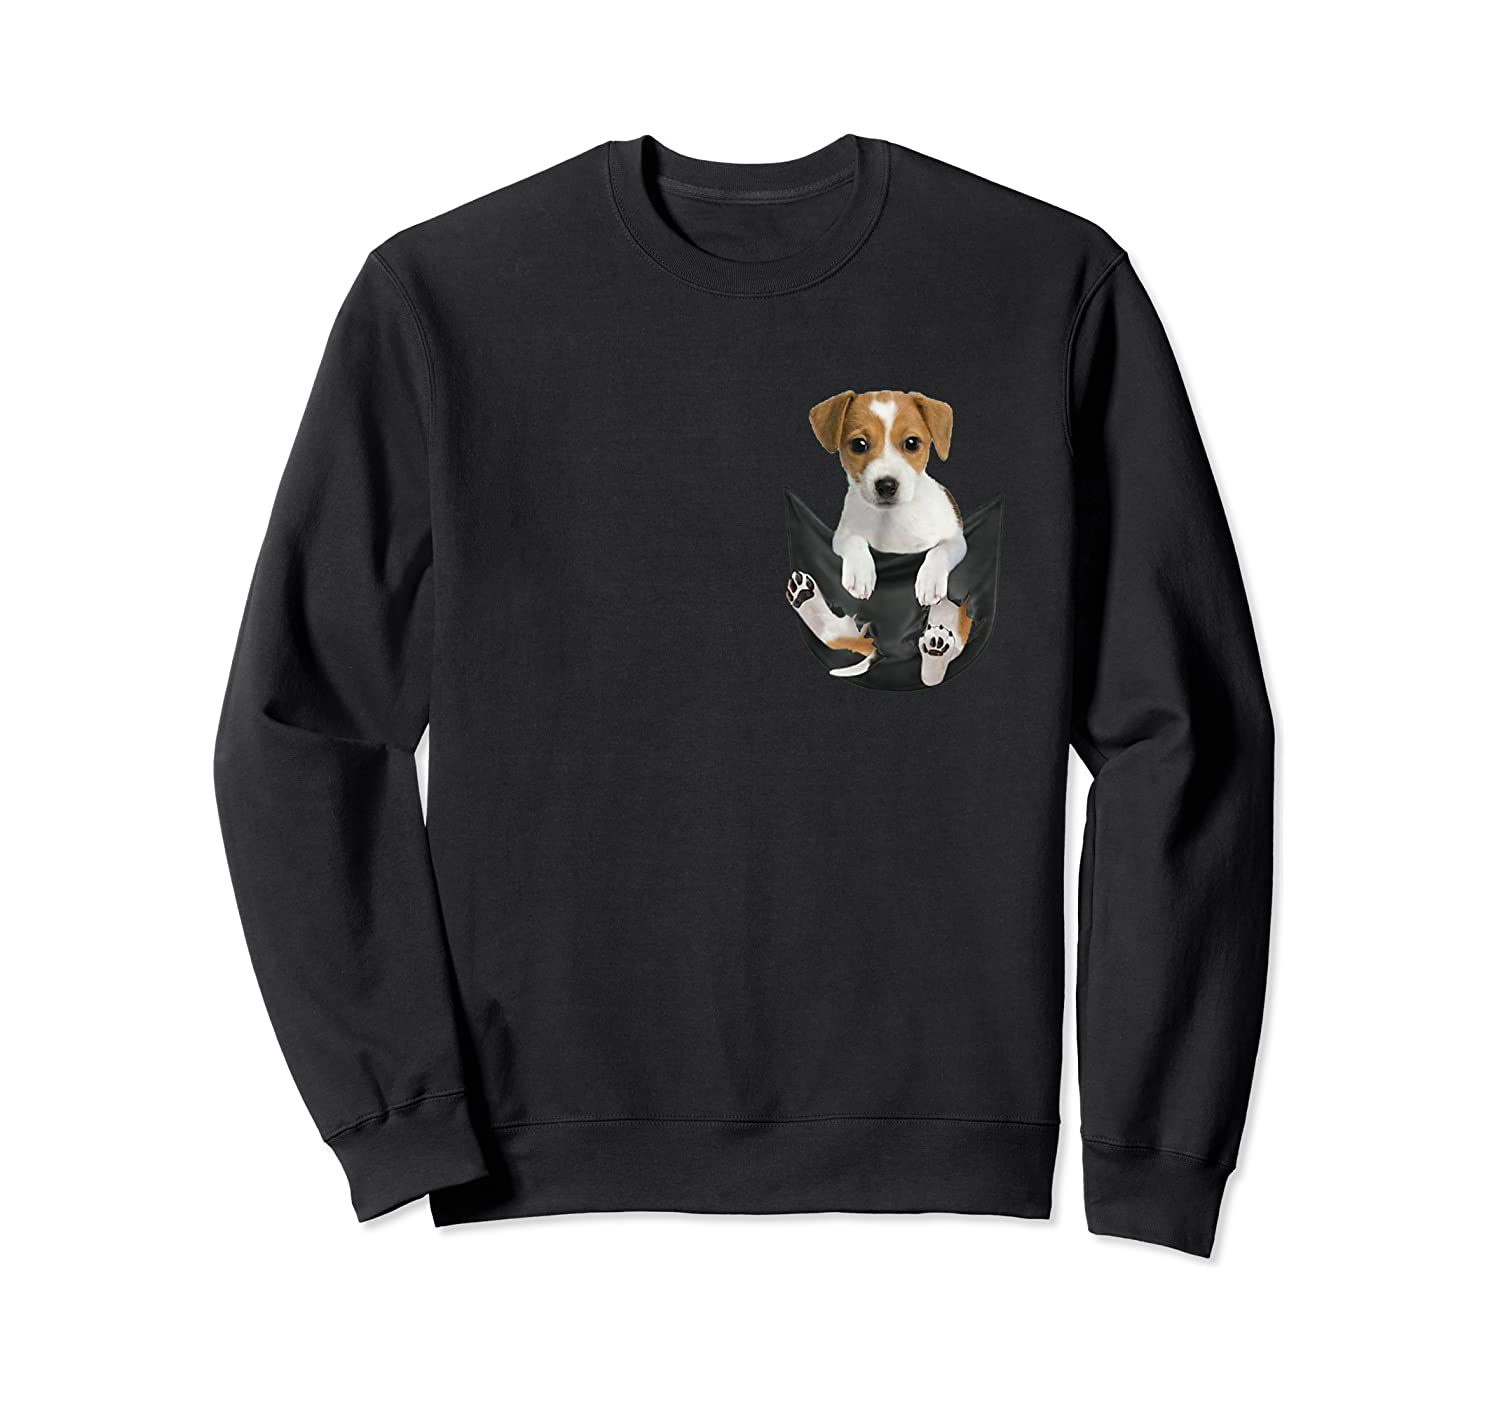 Jack Russell In Pocket Hot Trend Shirts Crewneck Sweater